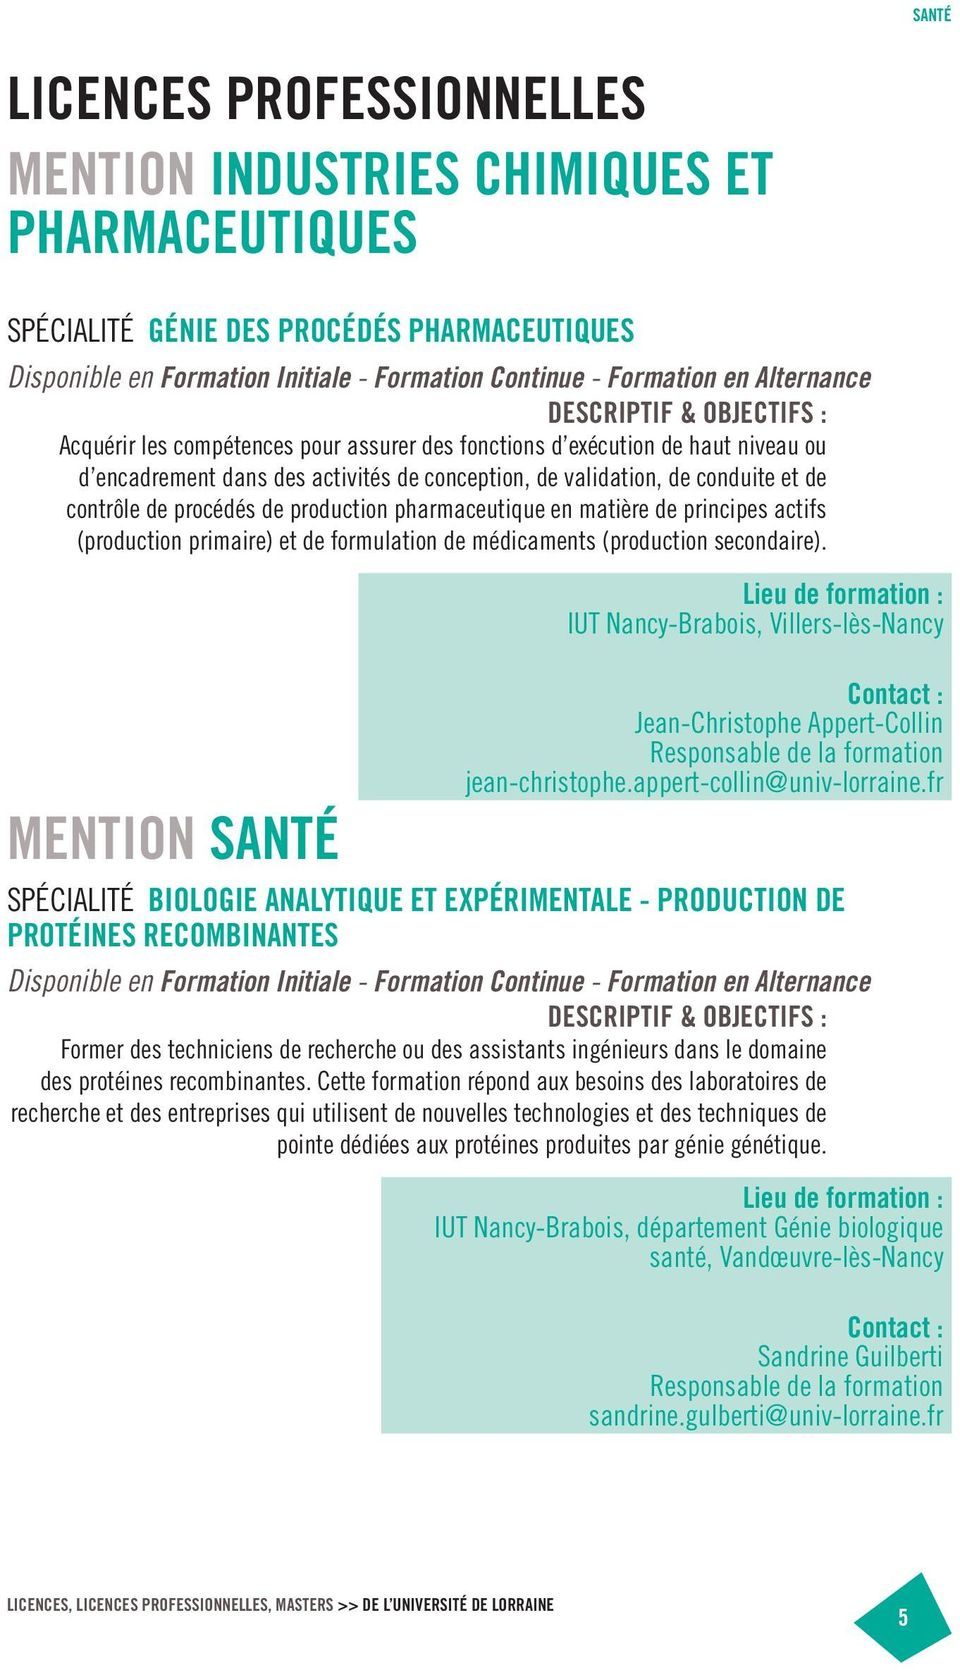 (production primaire) et de formulation de médicaments (production secondaire). IUT Nancy-Brabois, Villers-lès-Nancy Jean-Christophe Appert-Collin Responsable de la formation jean-christophe.